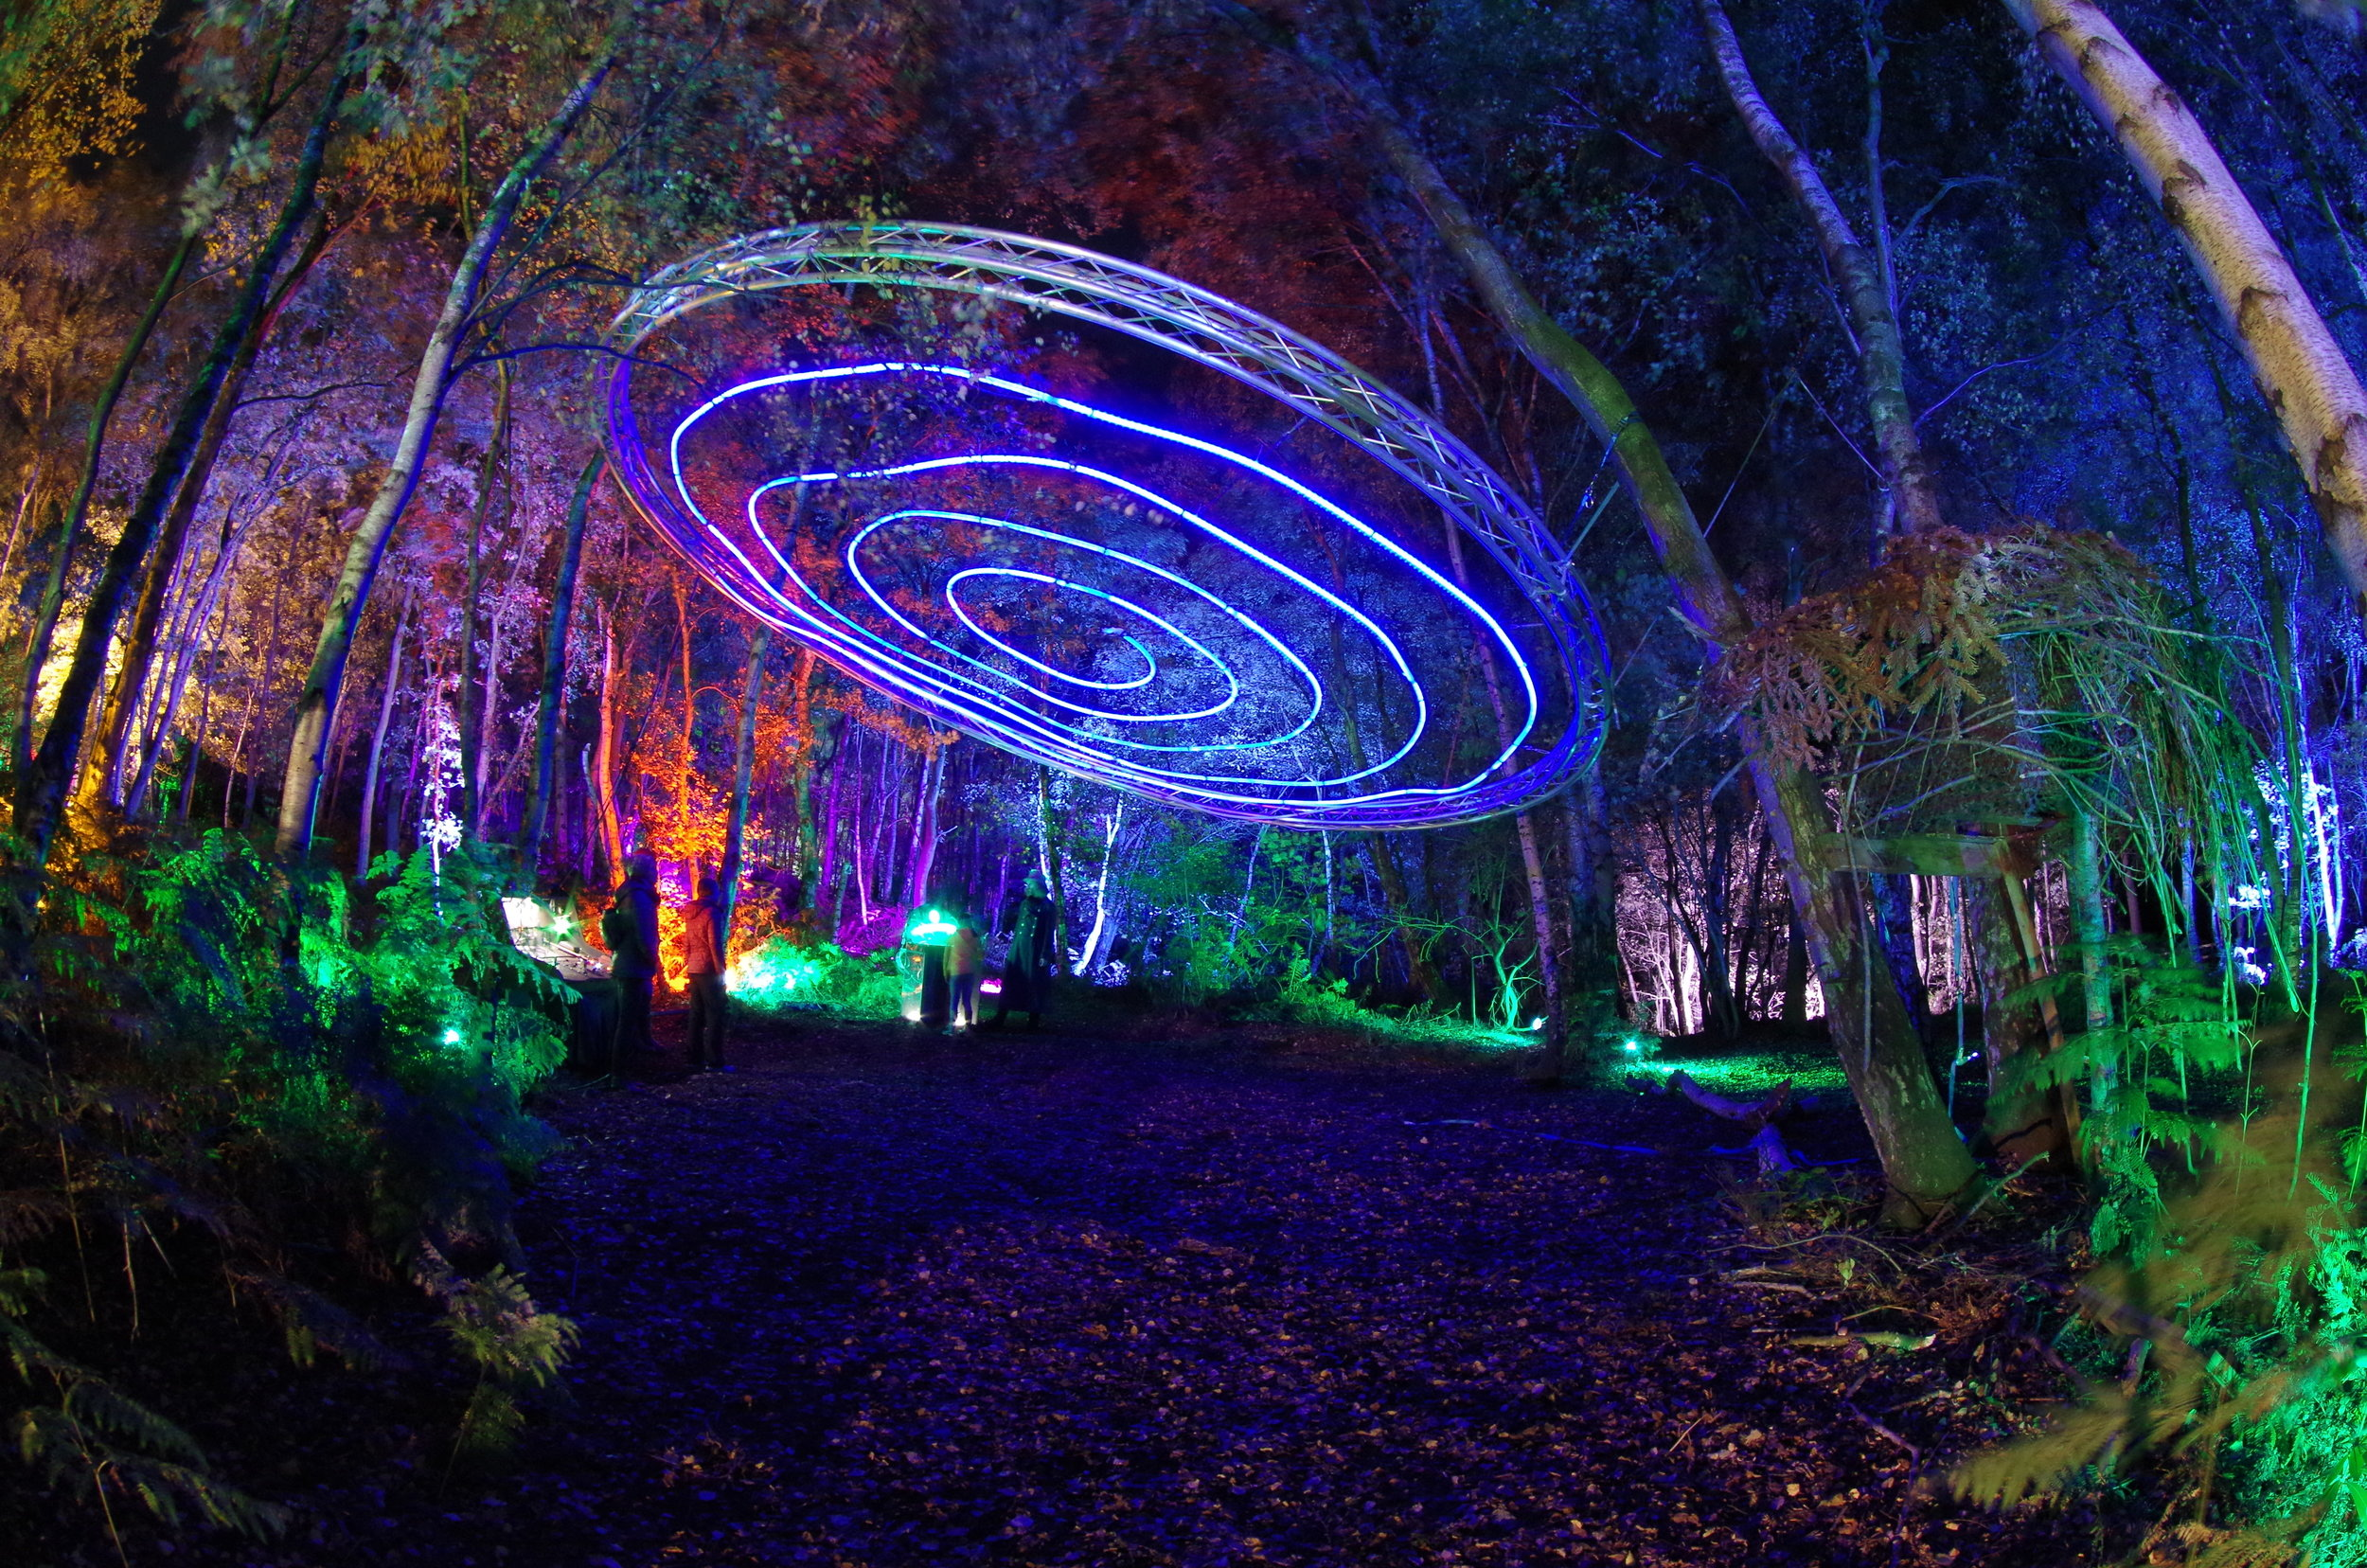 Spiral of Lights Magical Woodland 2018 copyright Rob Stanley